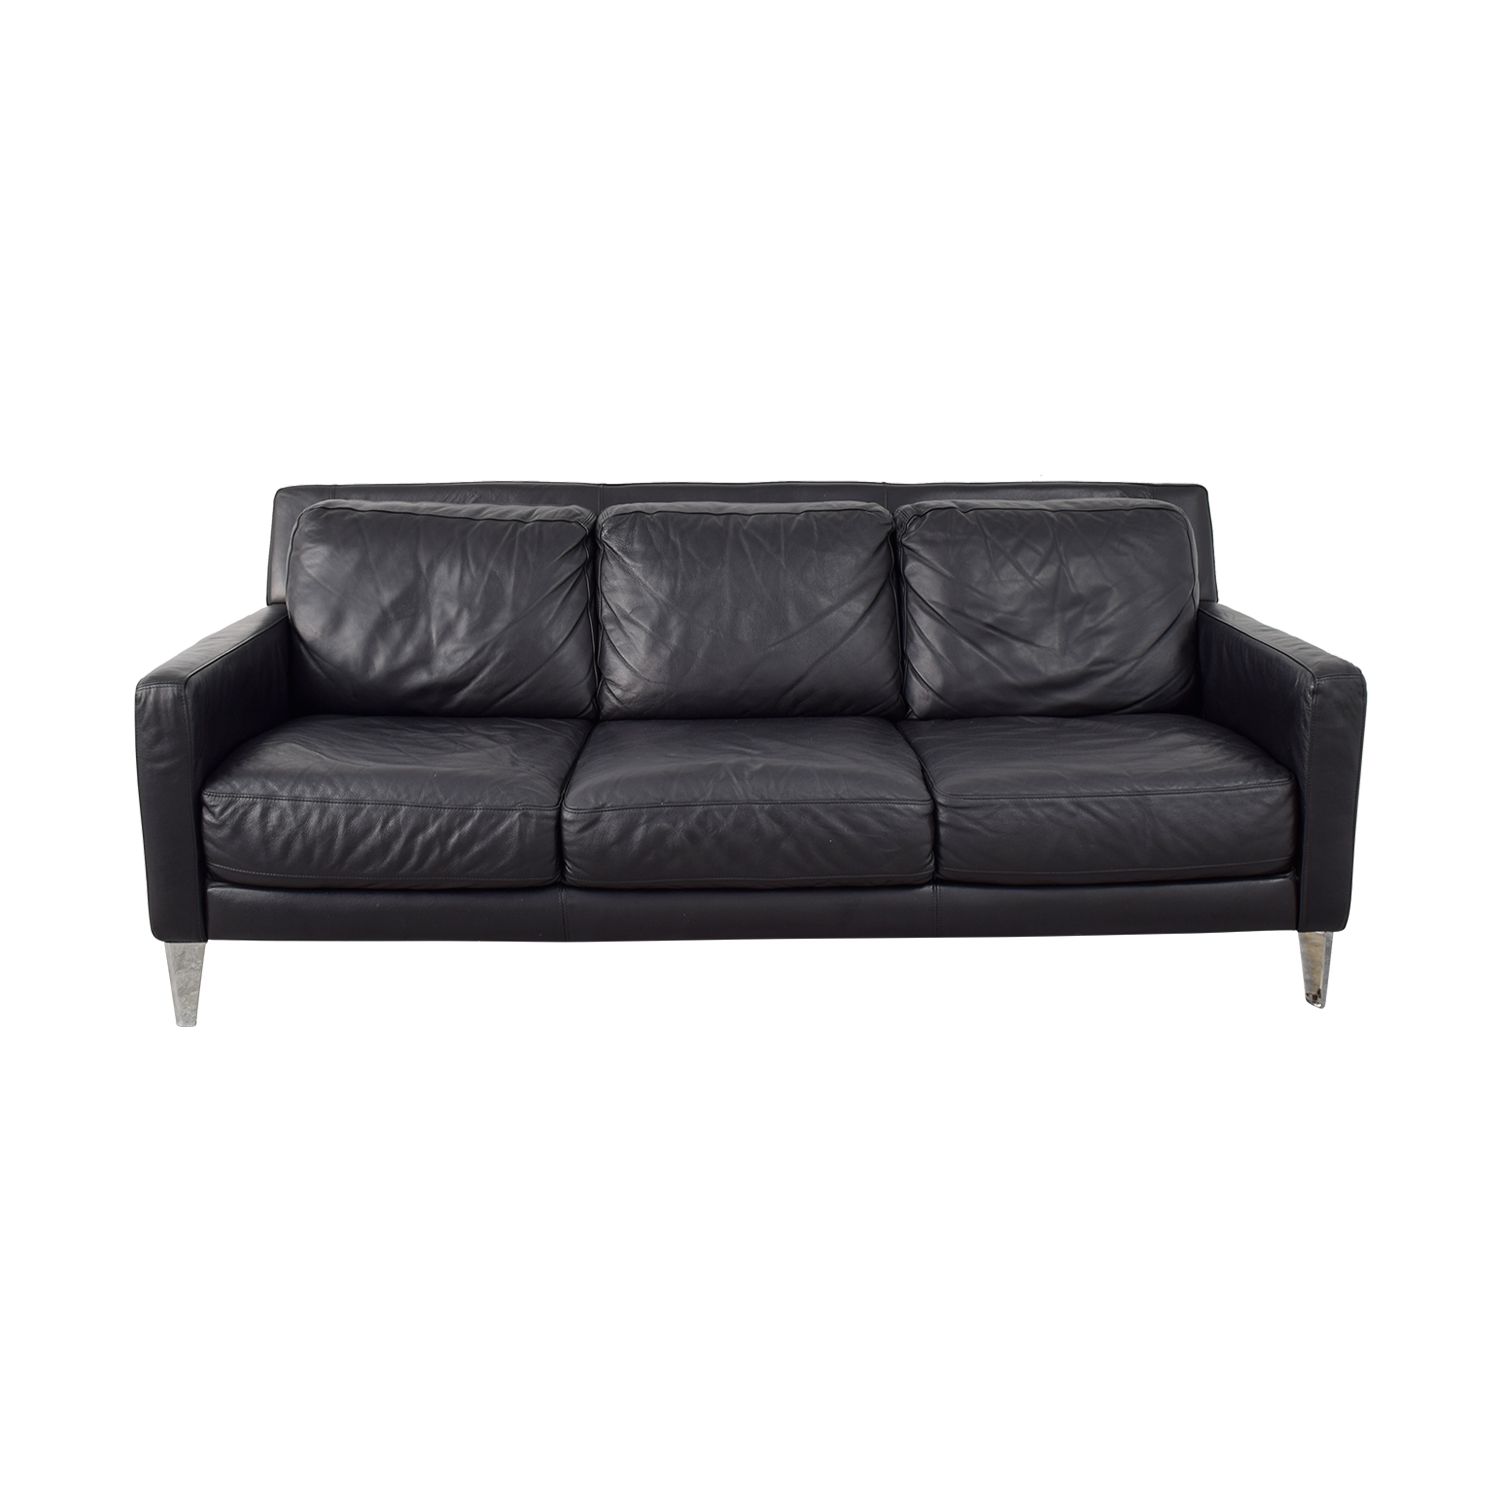 buy Bloomingdale's Bloomingdale's Black Italian Leather Three-Cushion Sofa online